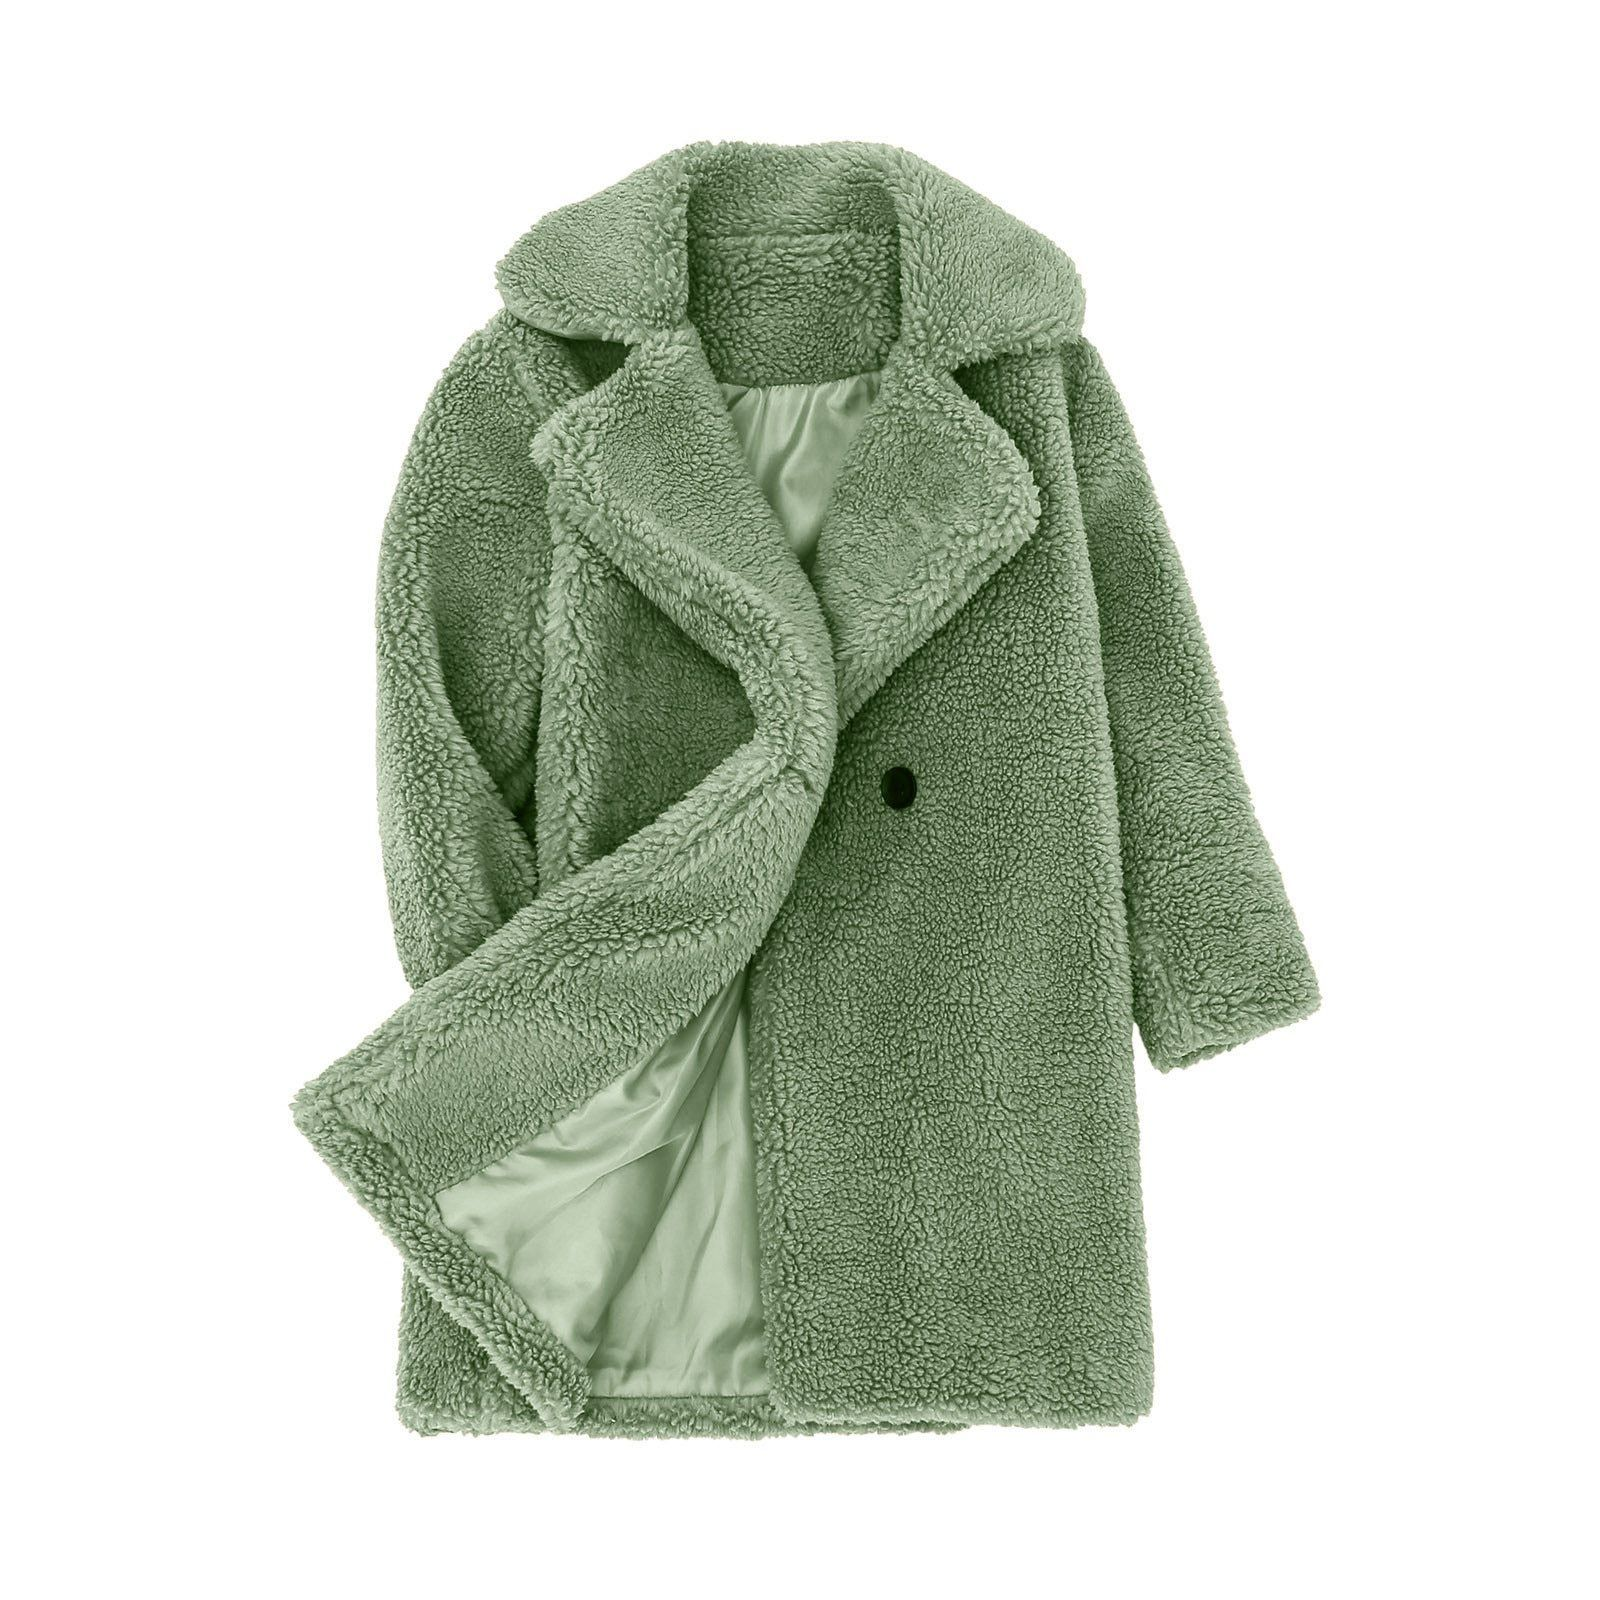 Warm & Cozy Trench Style Pocketed Coat - Green / 3T